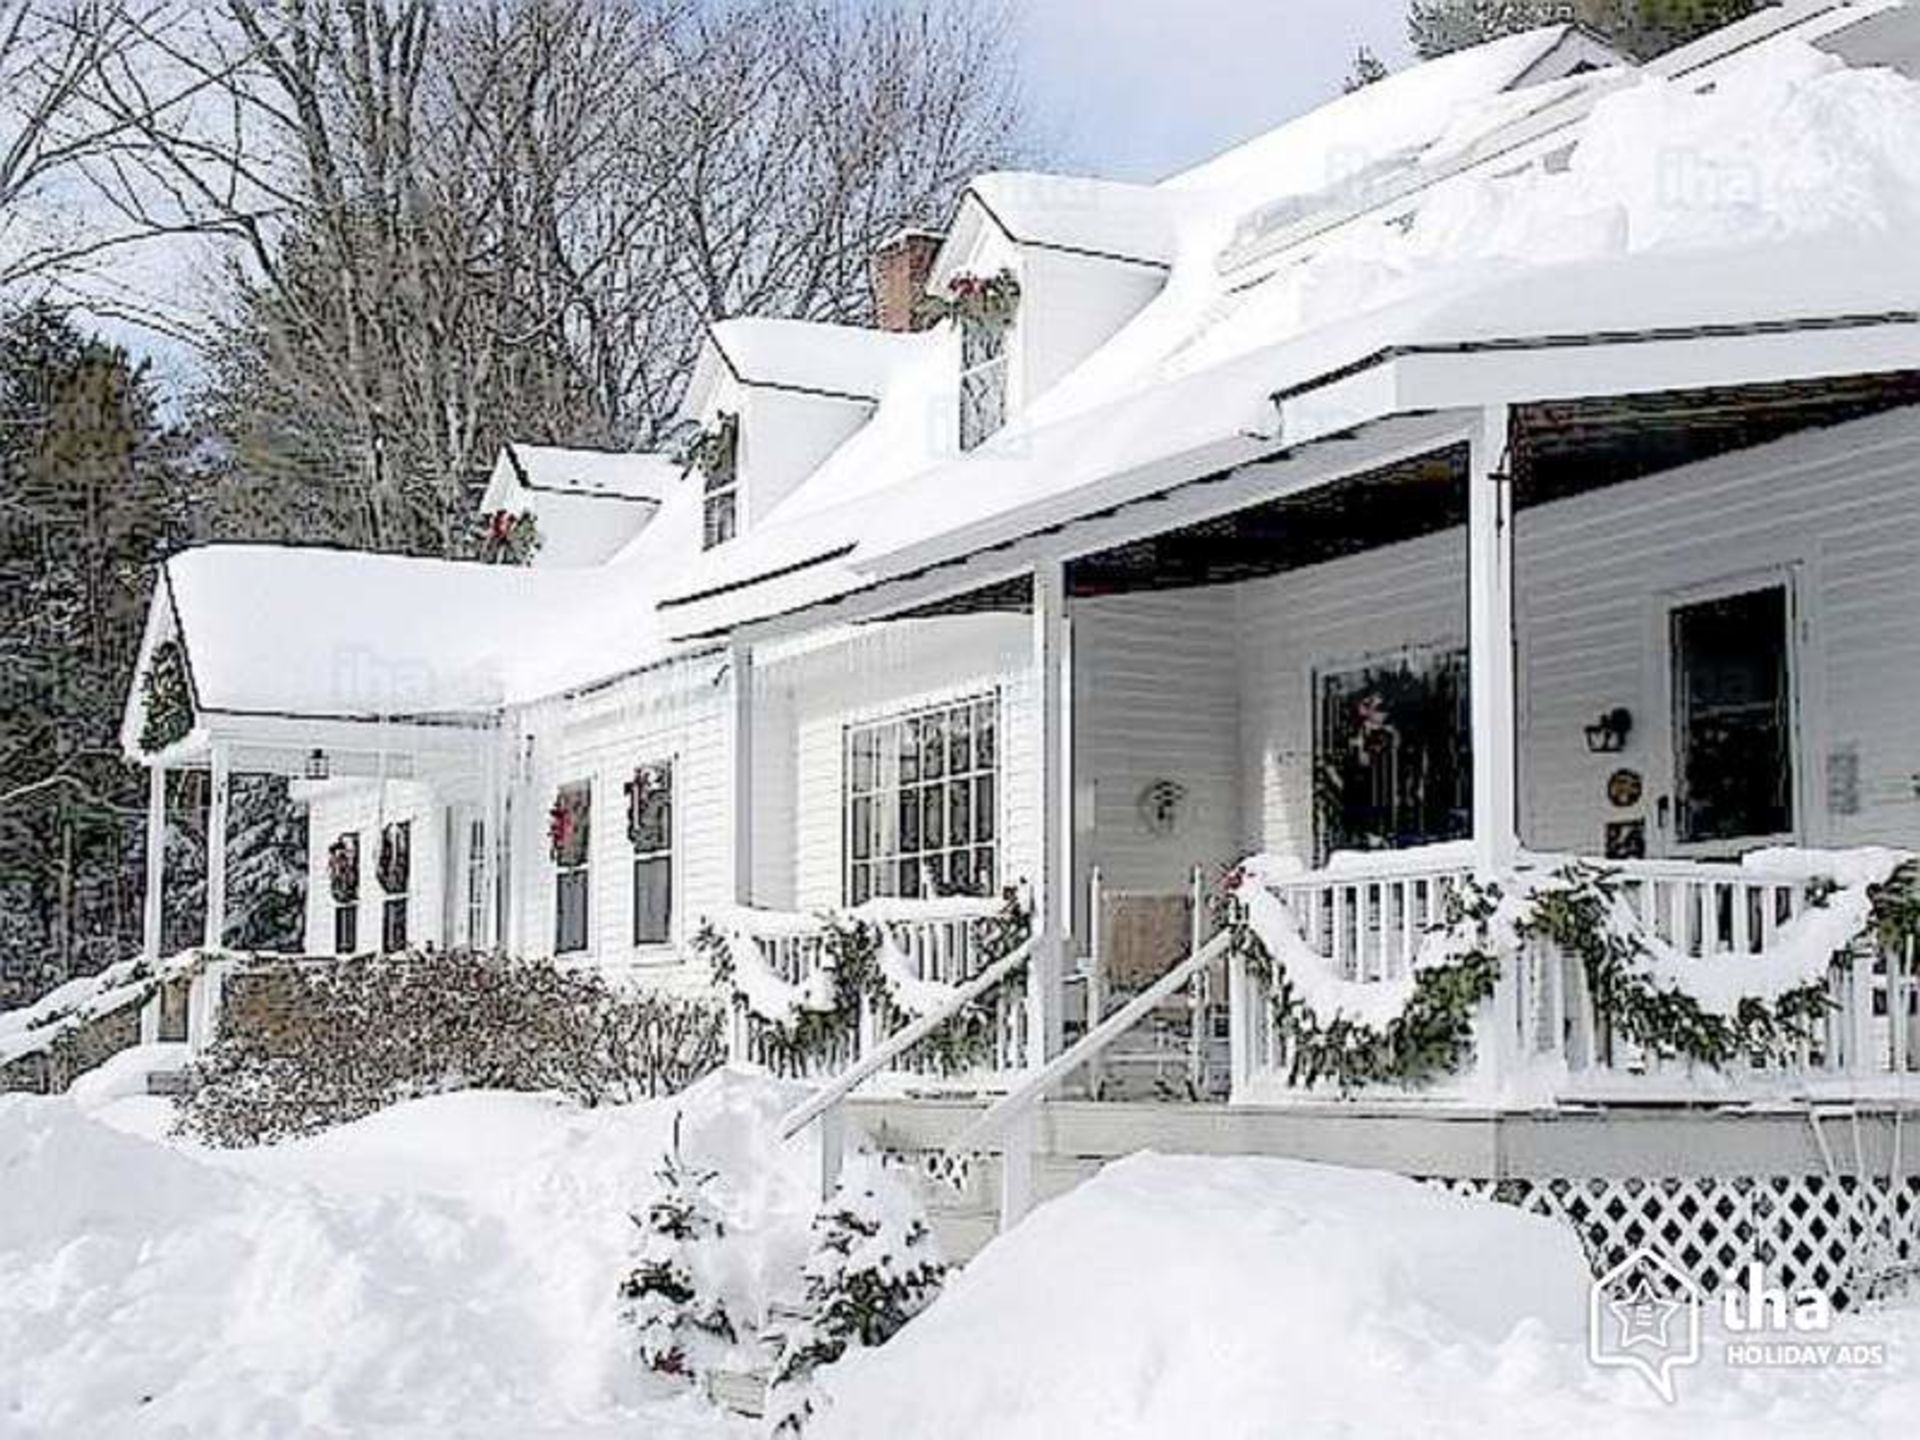 Boston Area Real Estate in the Midst of Snowstorms and Uncertain Times